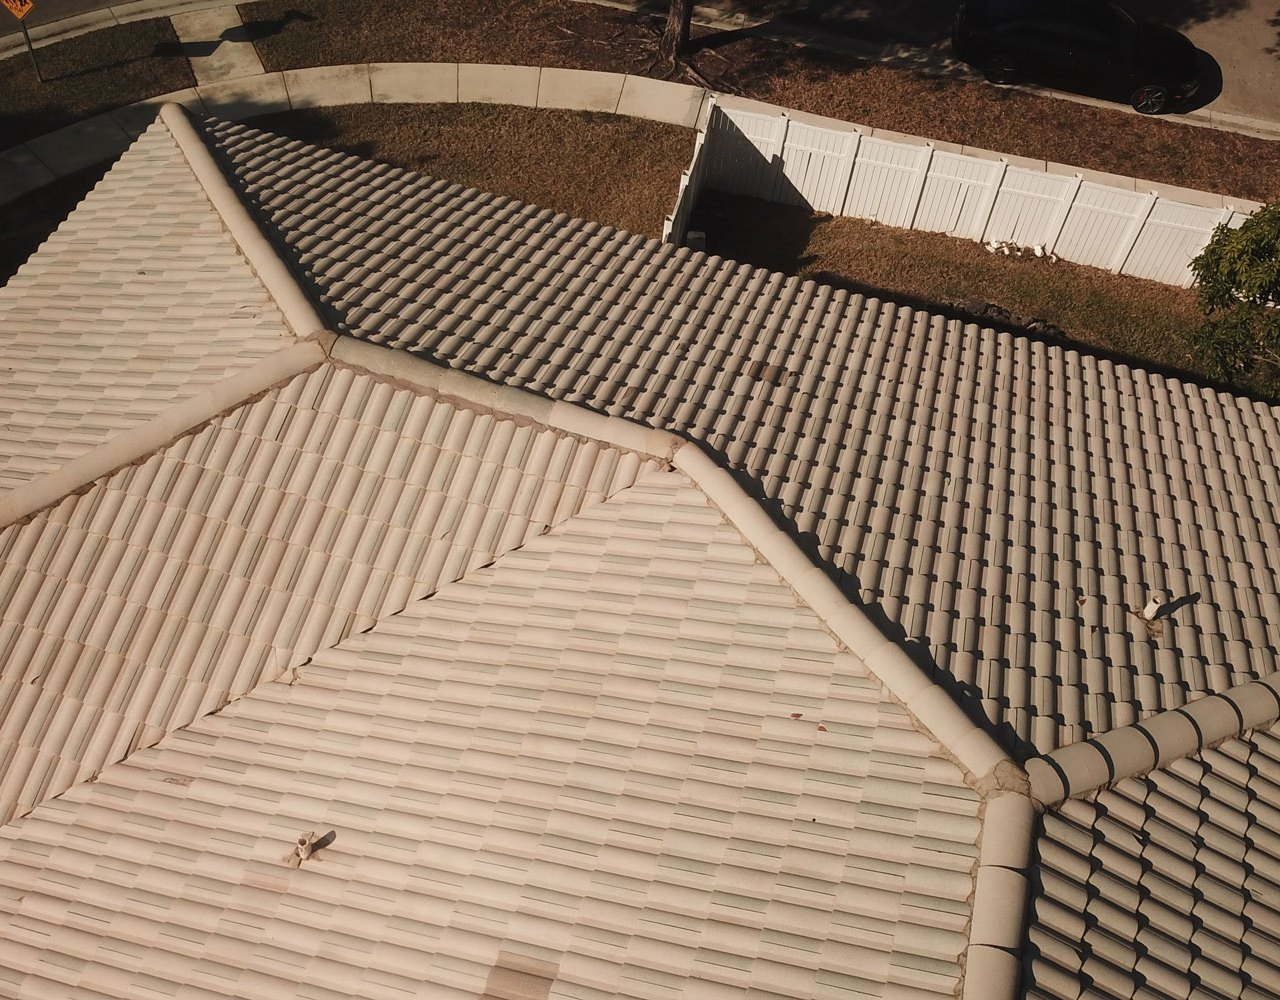 Roofing-galery-3